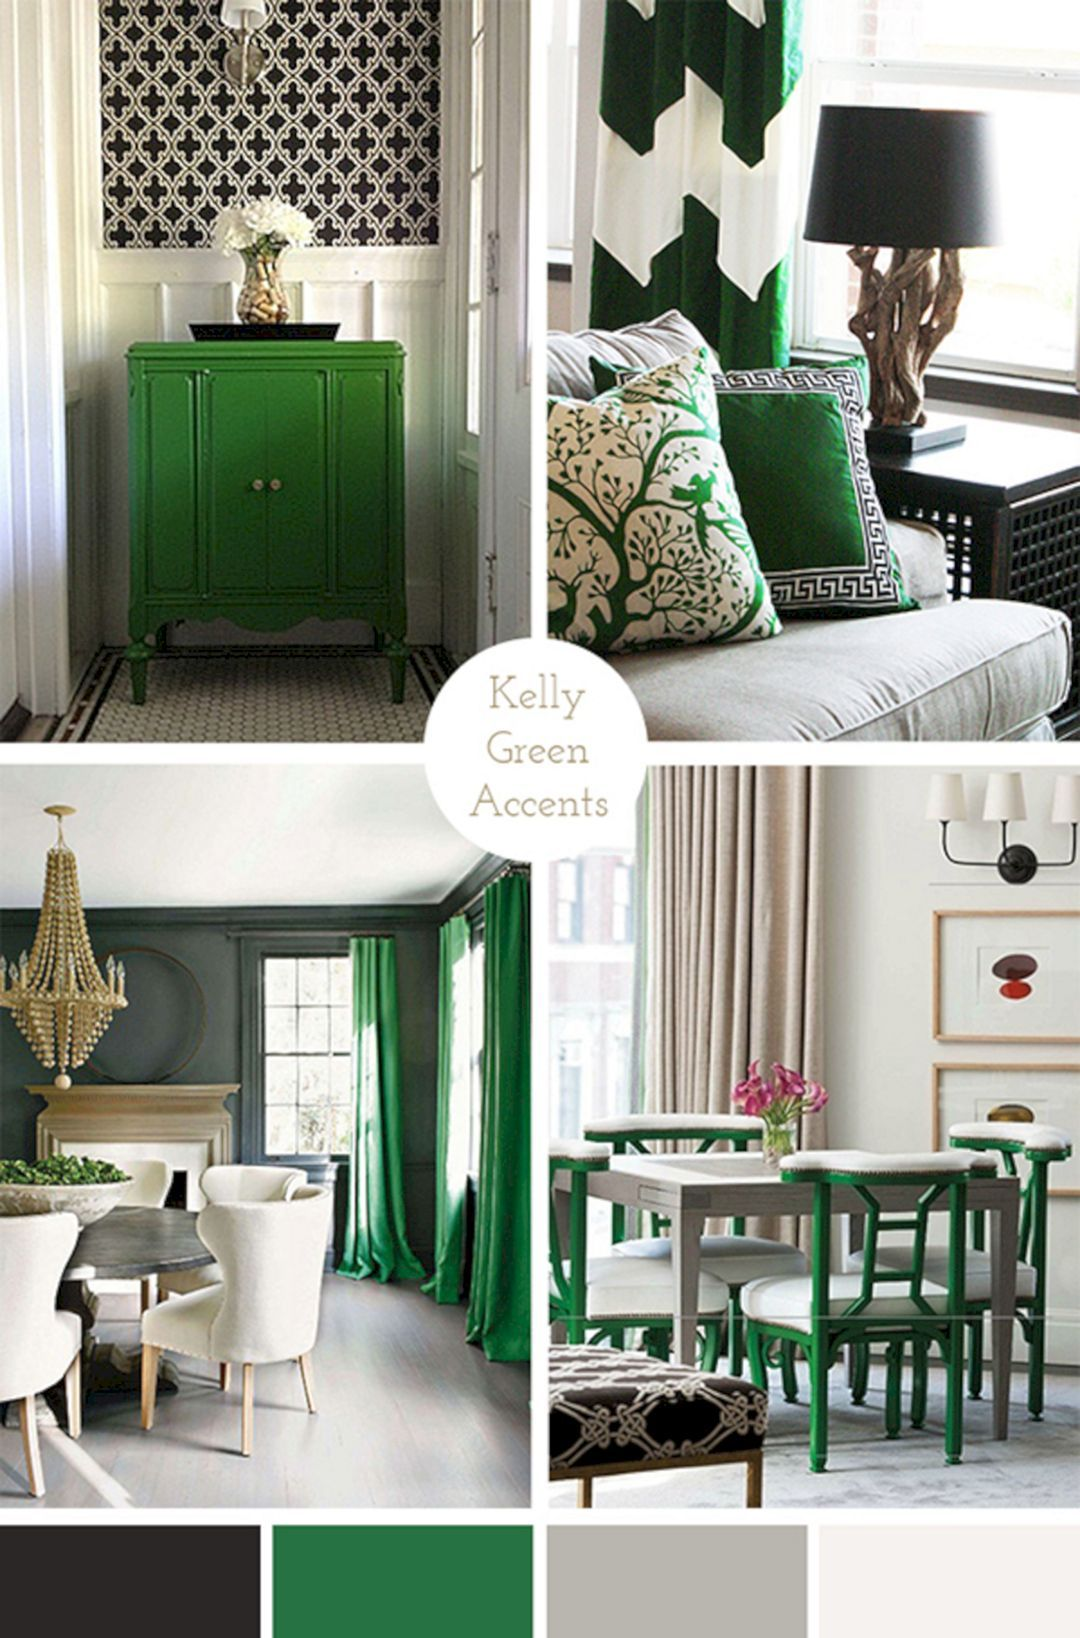 50 Marvelous Green Colors Accents For Your Home Inspirations Freshouz Com Living Room Green Living Room Grey Bedroom Green